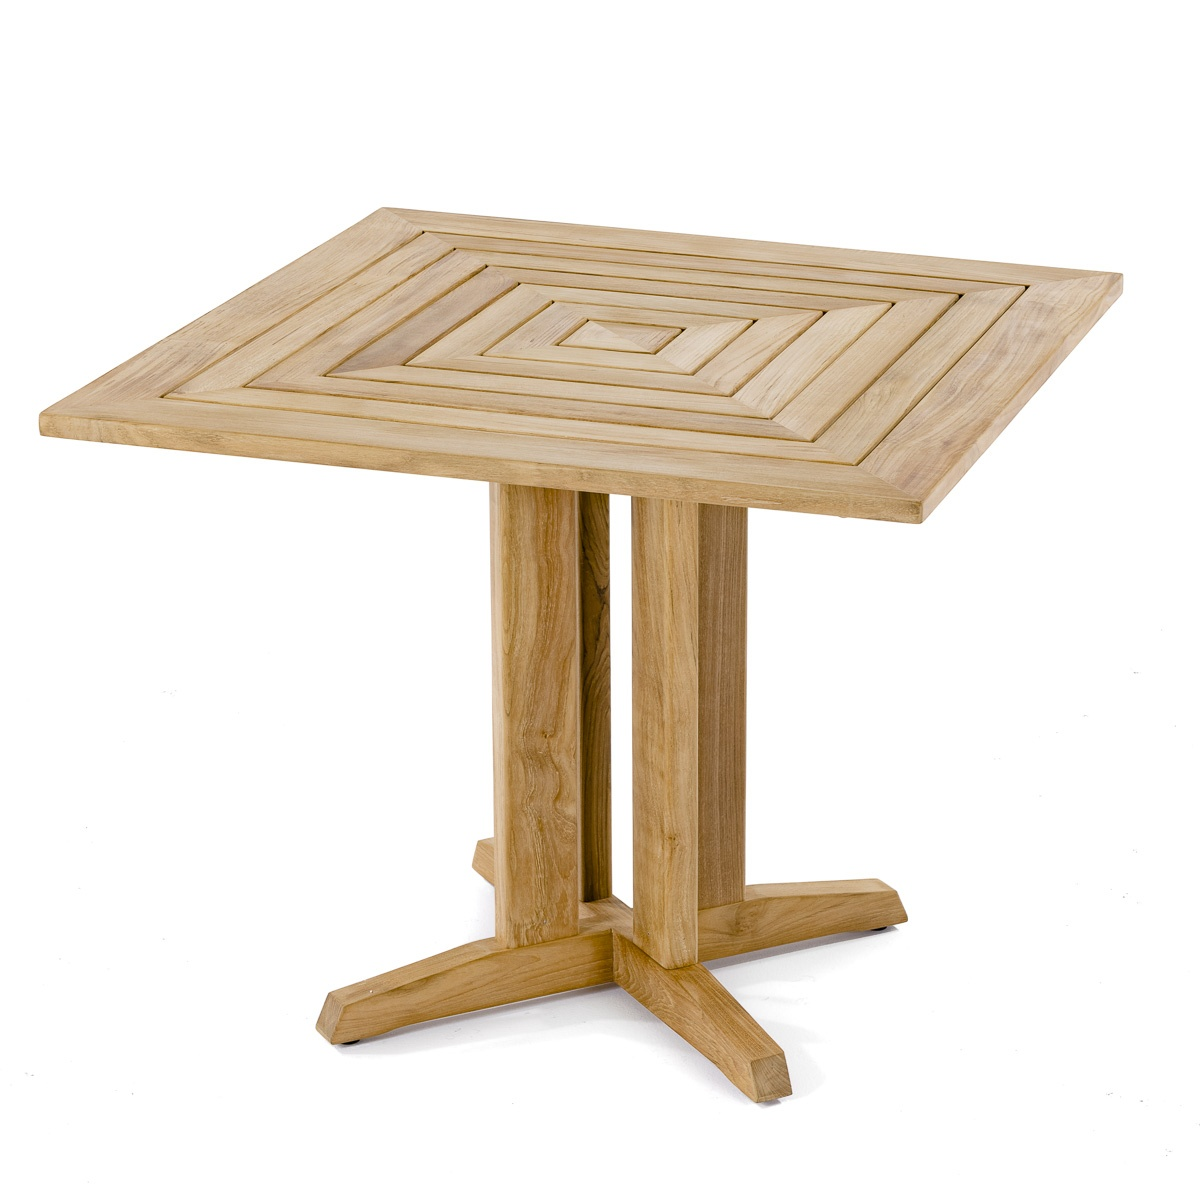 Square Teak Outdoor Dining Table Westminster Teak Outdoor Furniture